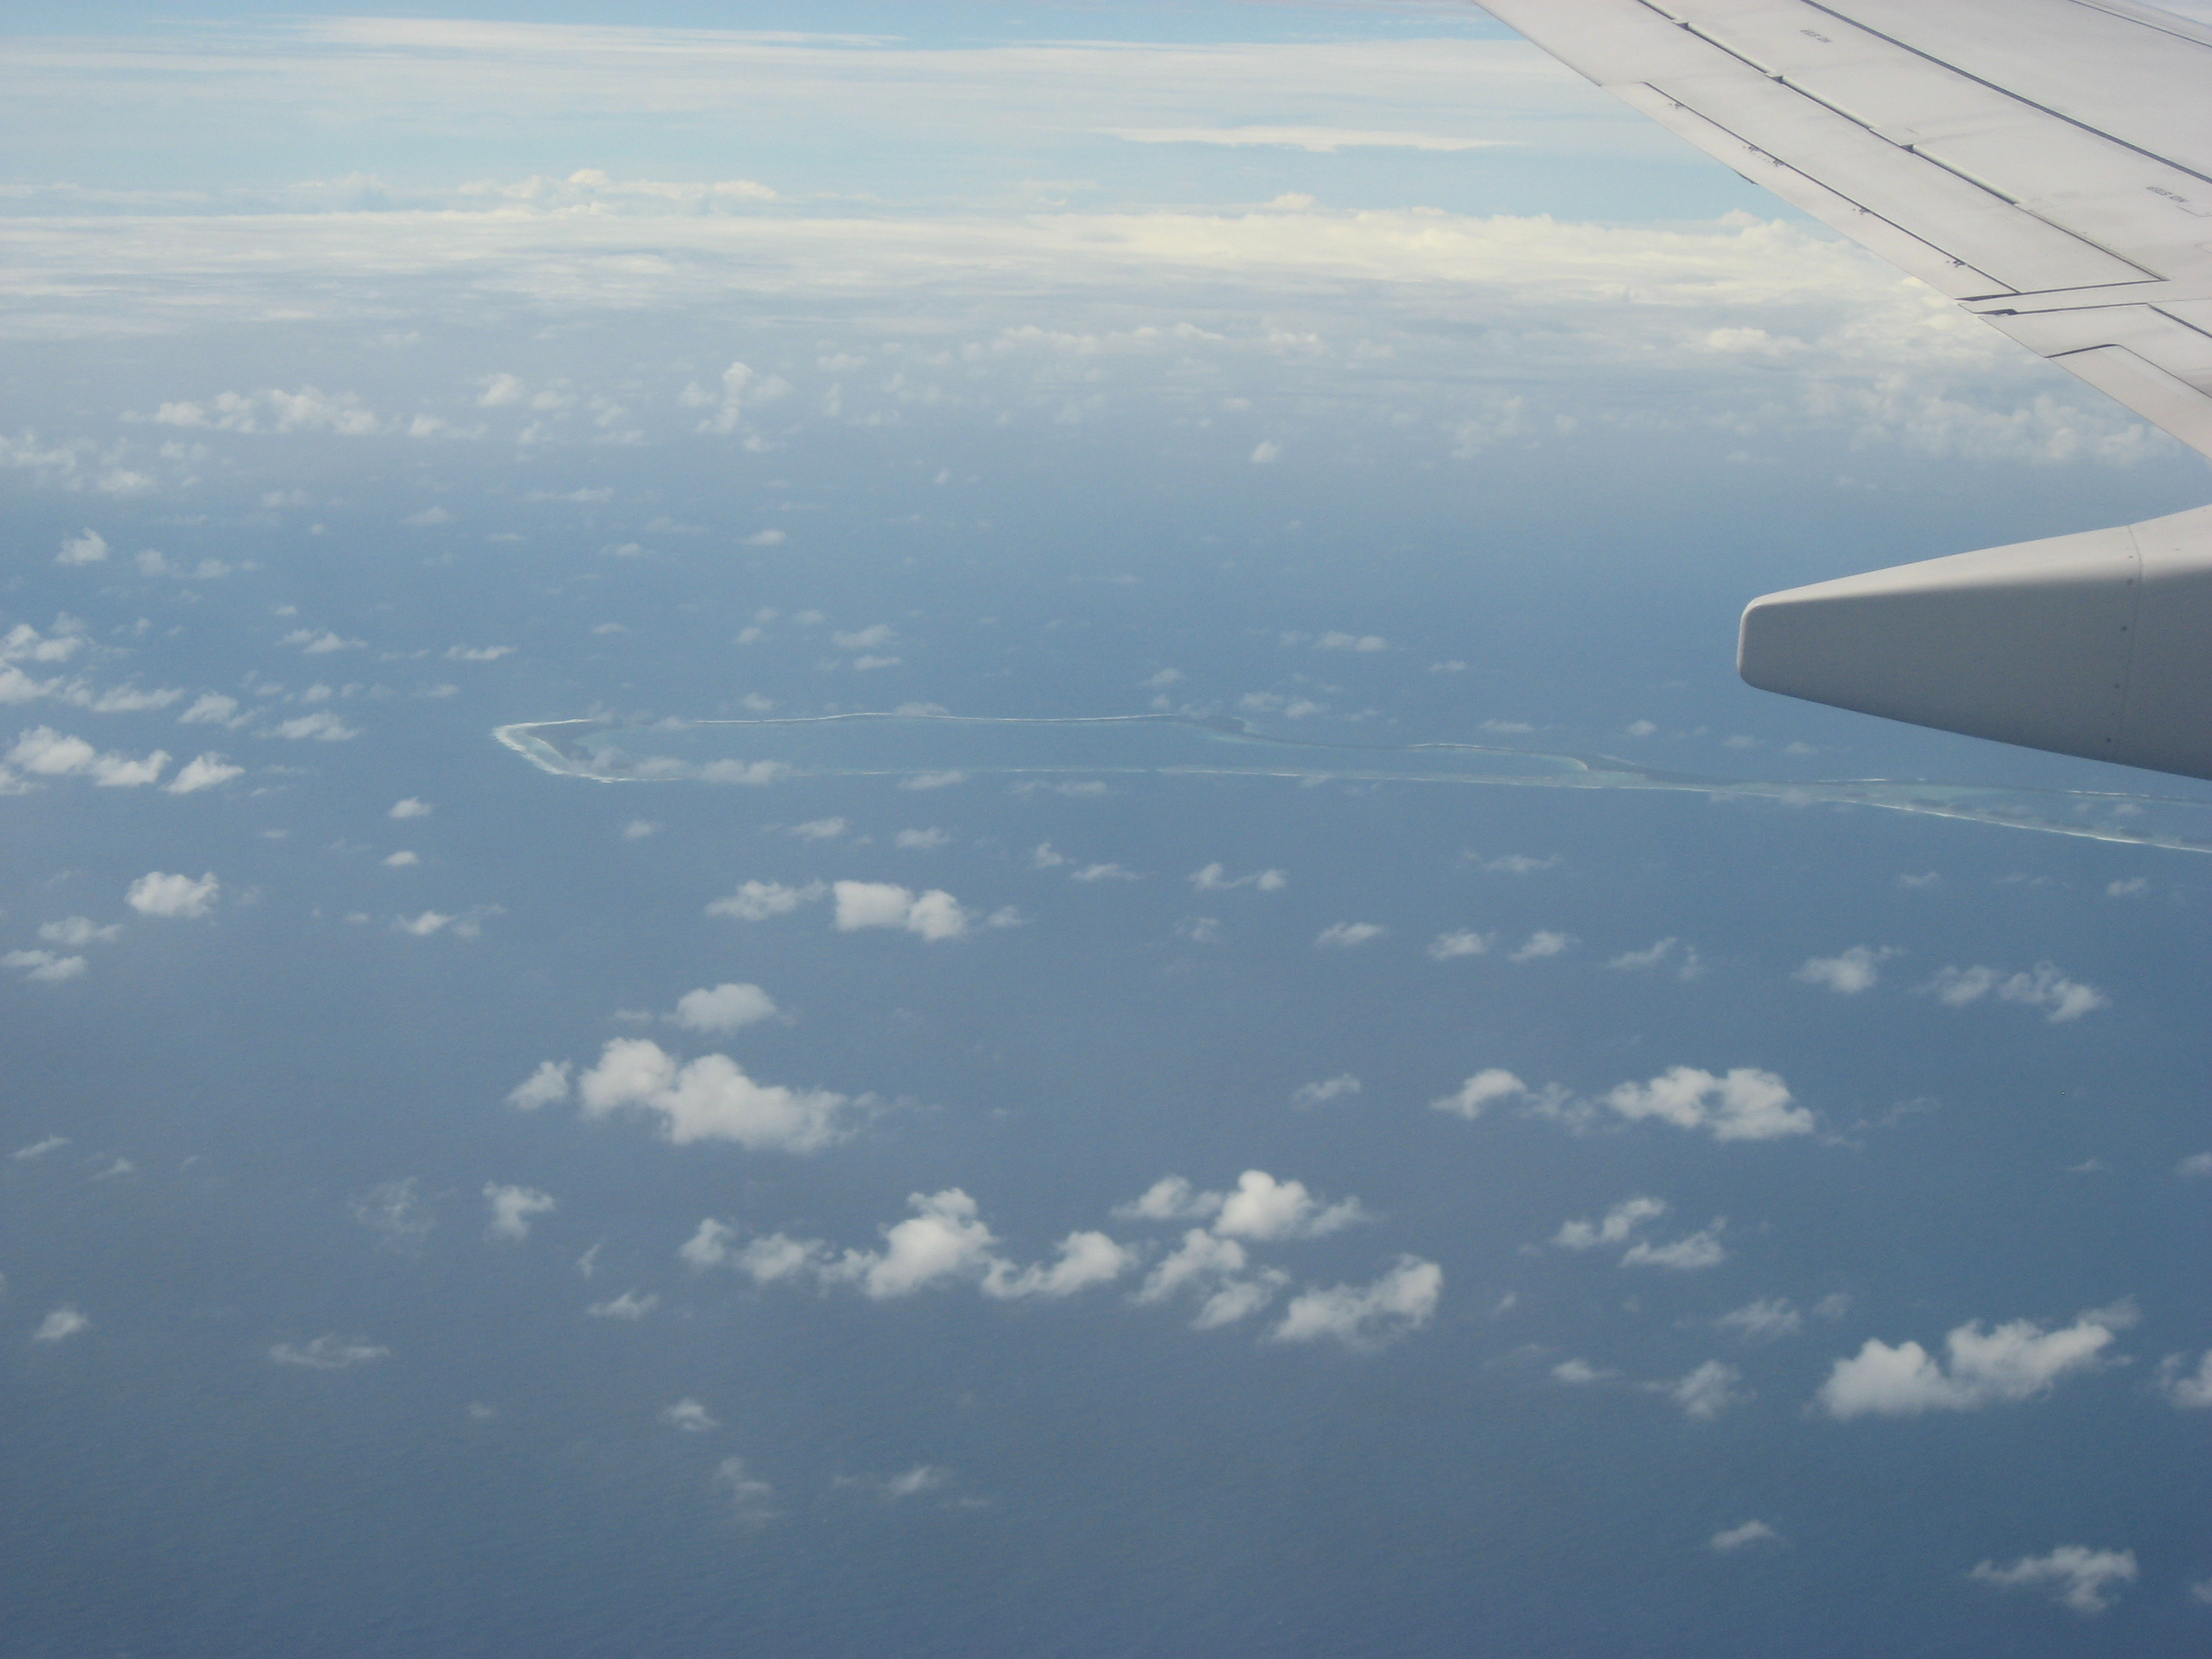 view of atoll from plane